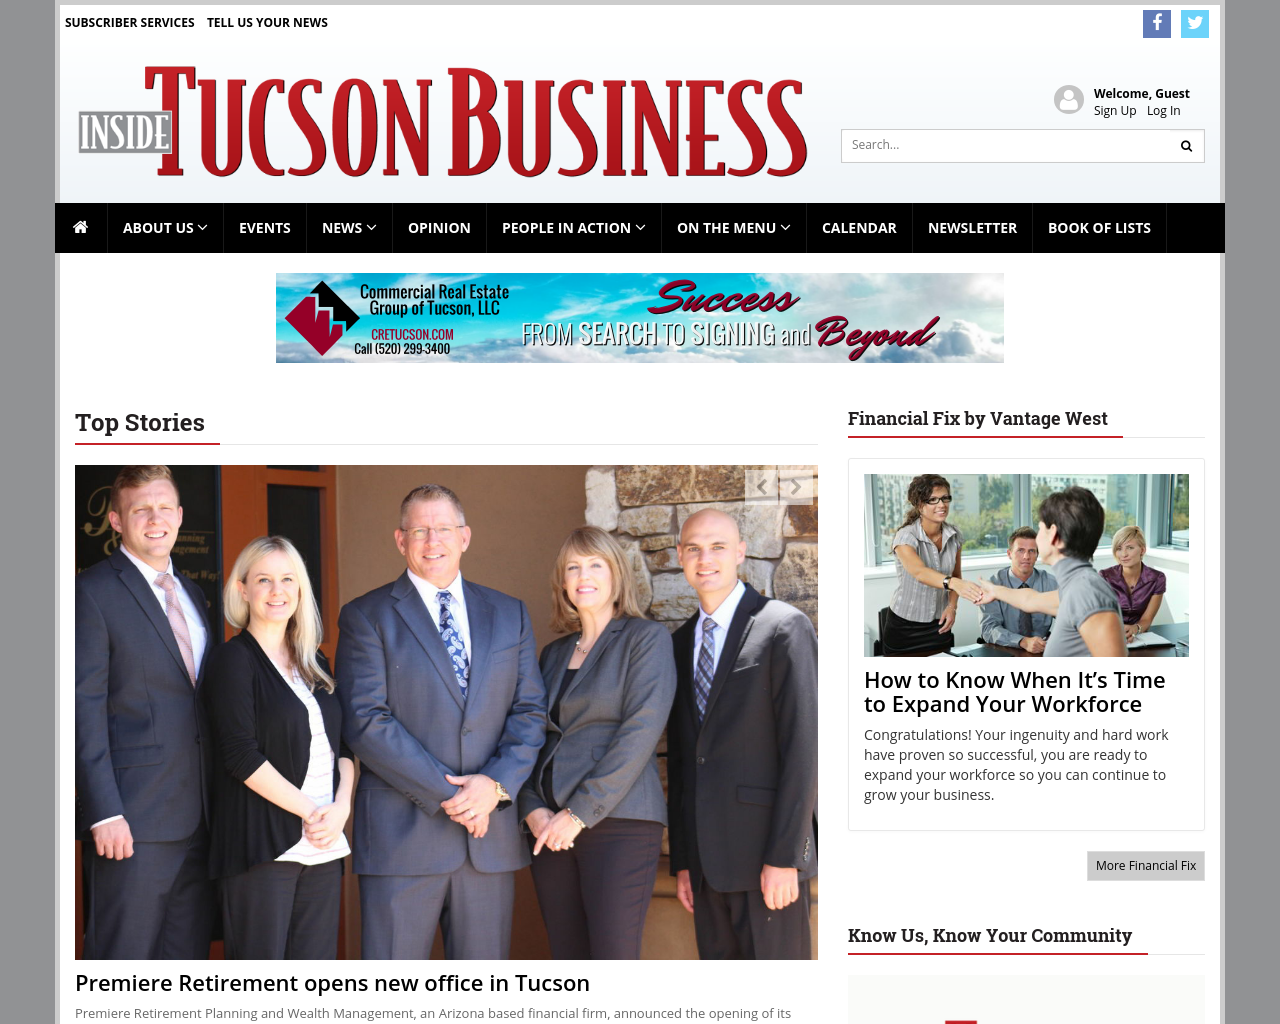 Inside-Tucson-Business-Advertising-Reviews-Pricing